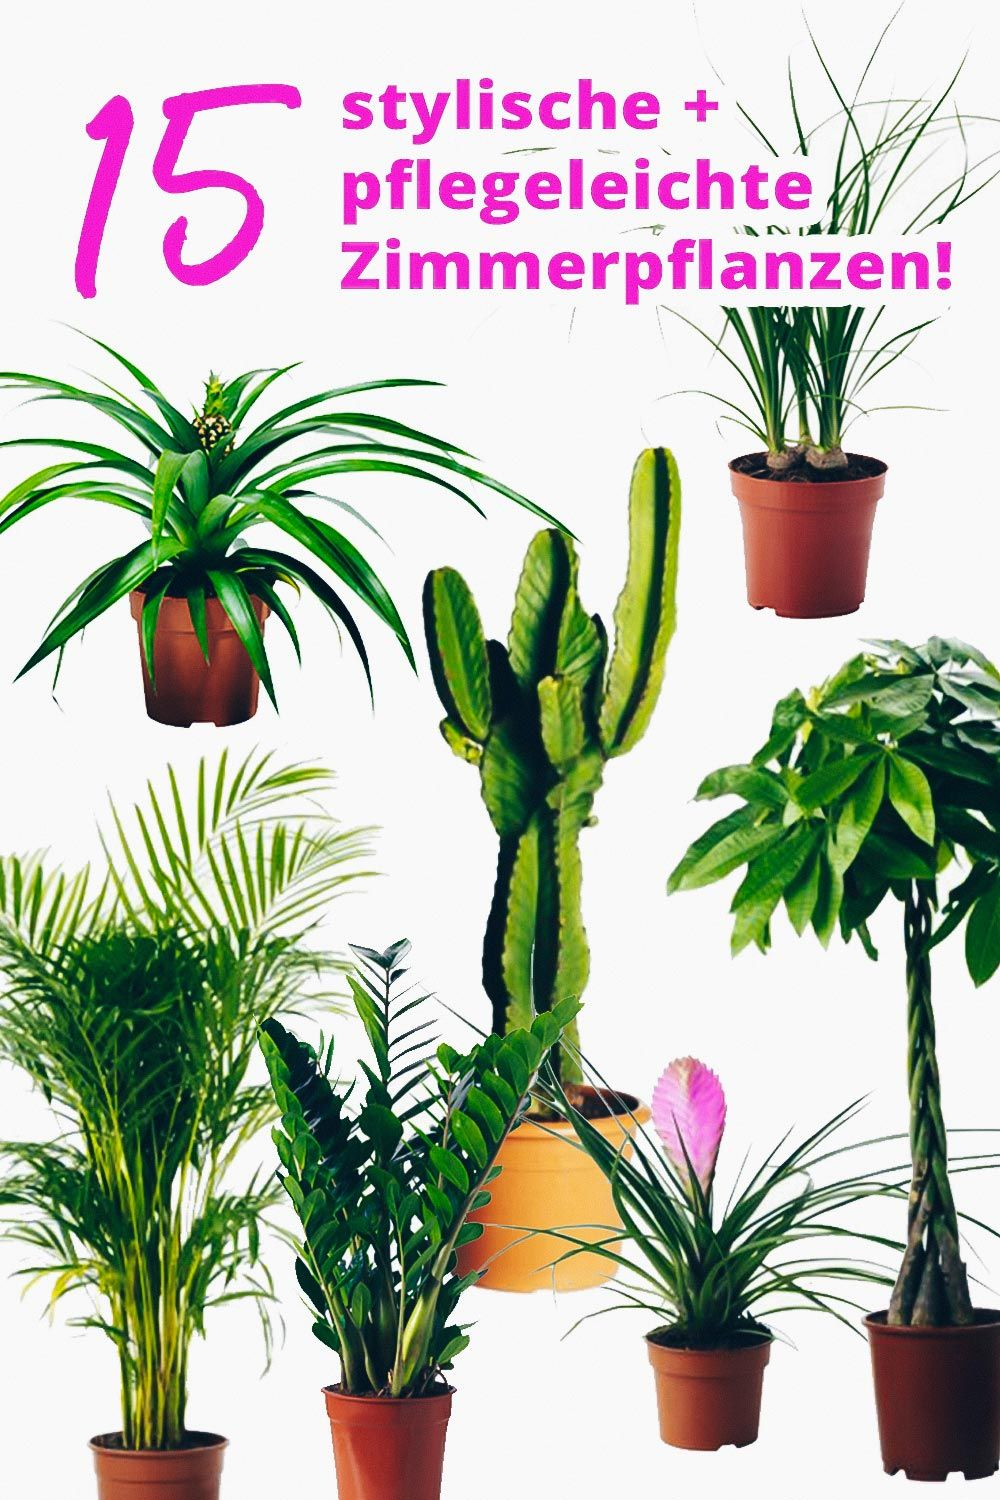 der pflanzen guide 15 stylische und pflegeleichte zimmerpflanzen pflanzen plants indoor. Black Bedroom Furniture Sets. Home Design Ideas